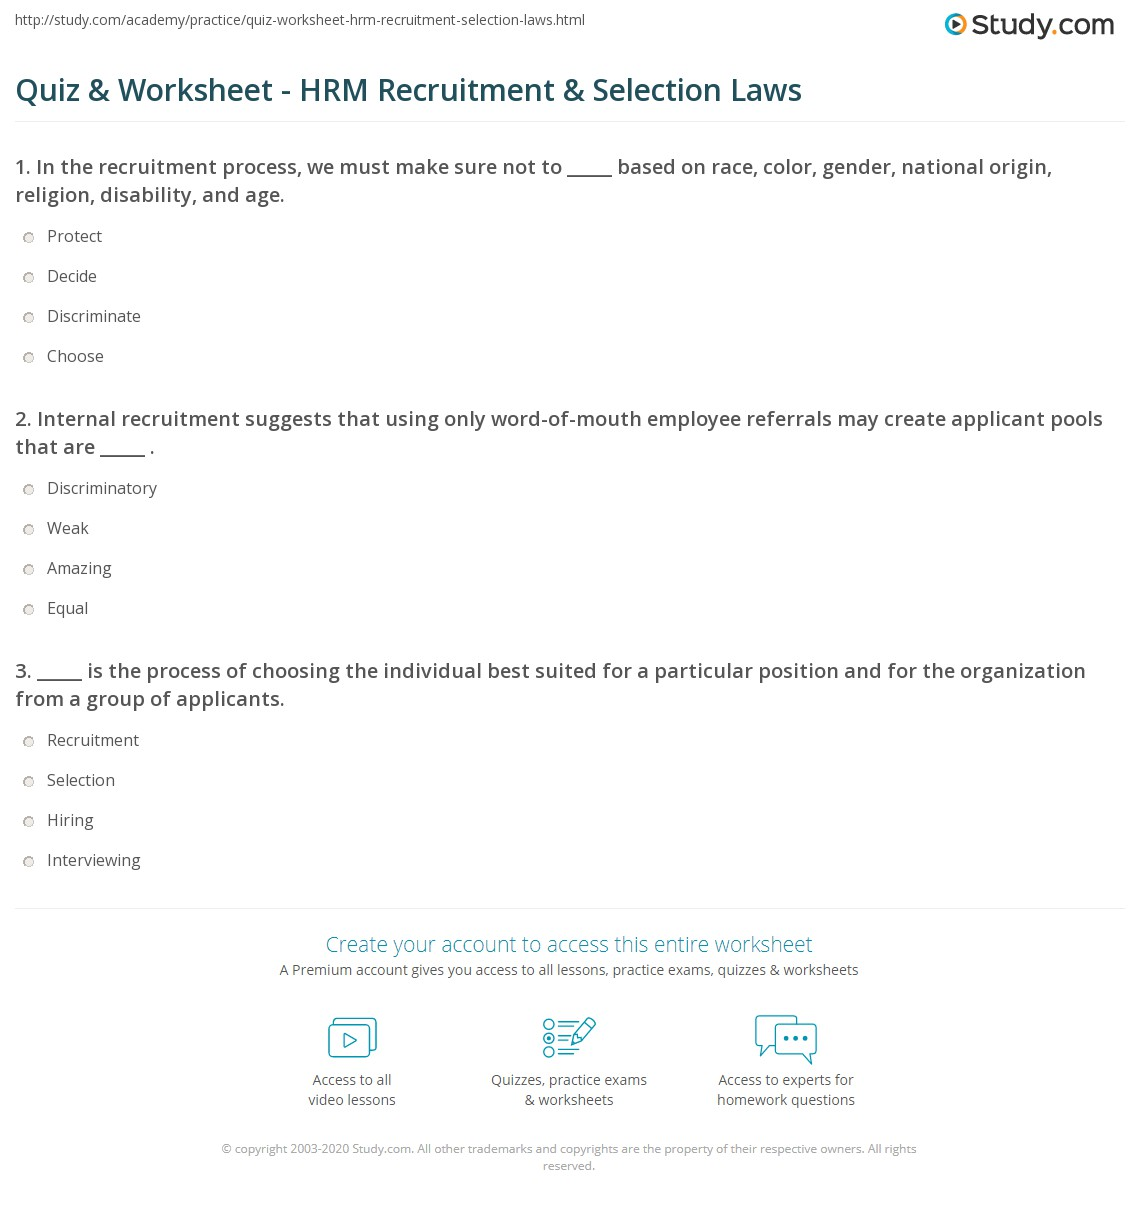 Quiz & Worksheet - HRM Recruitment & Selection Laws | Study com